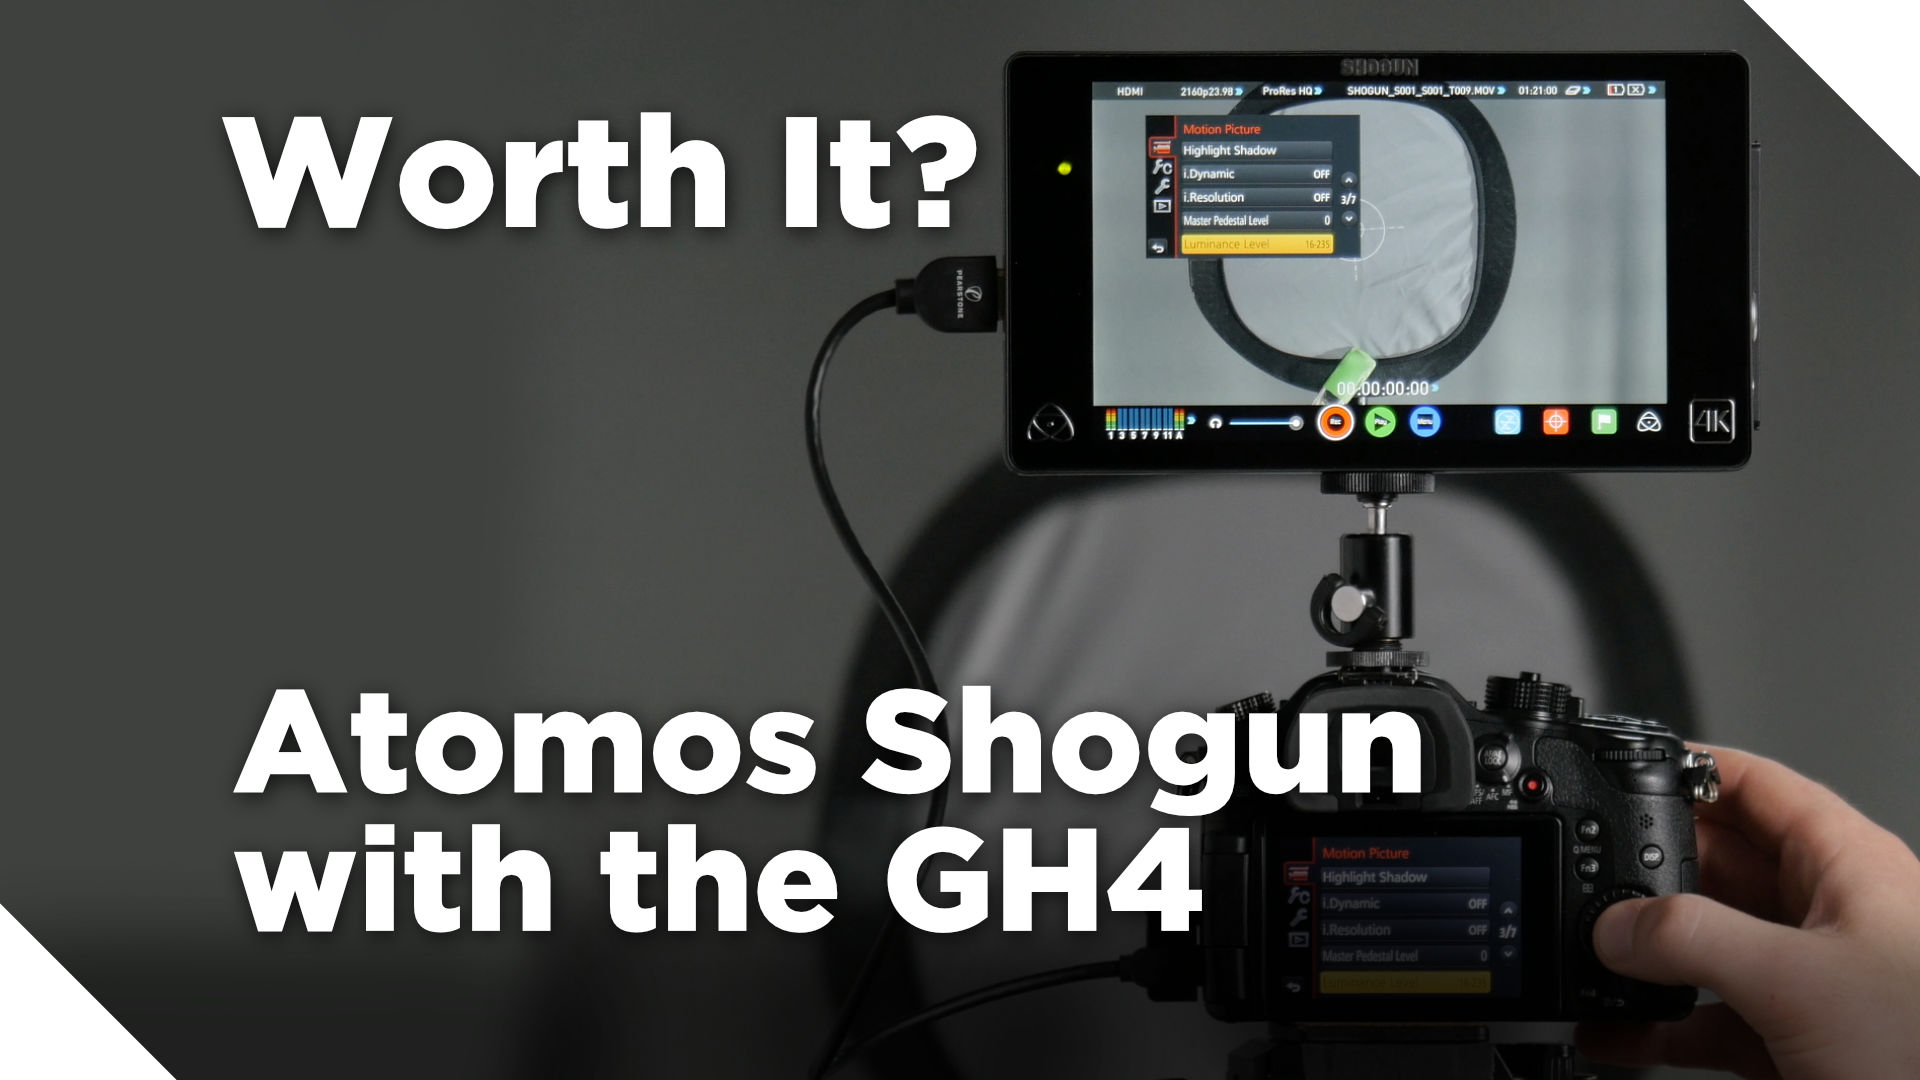 Atomos Shogun with the GH4 – Worth It?